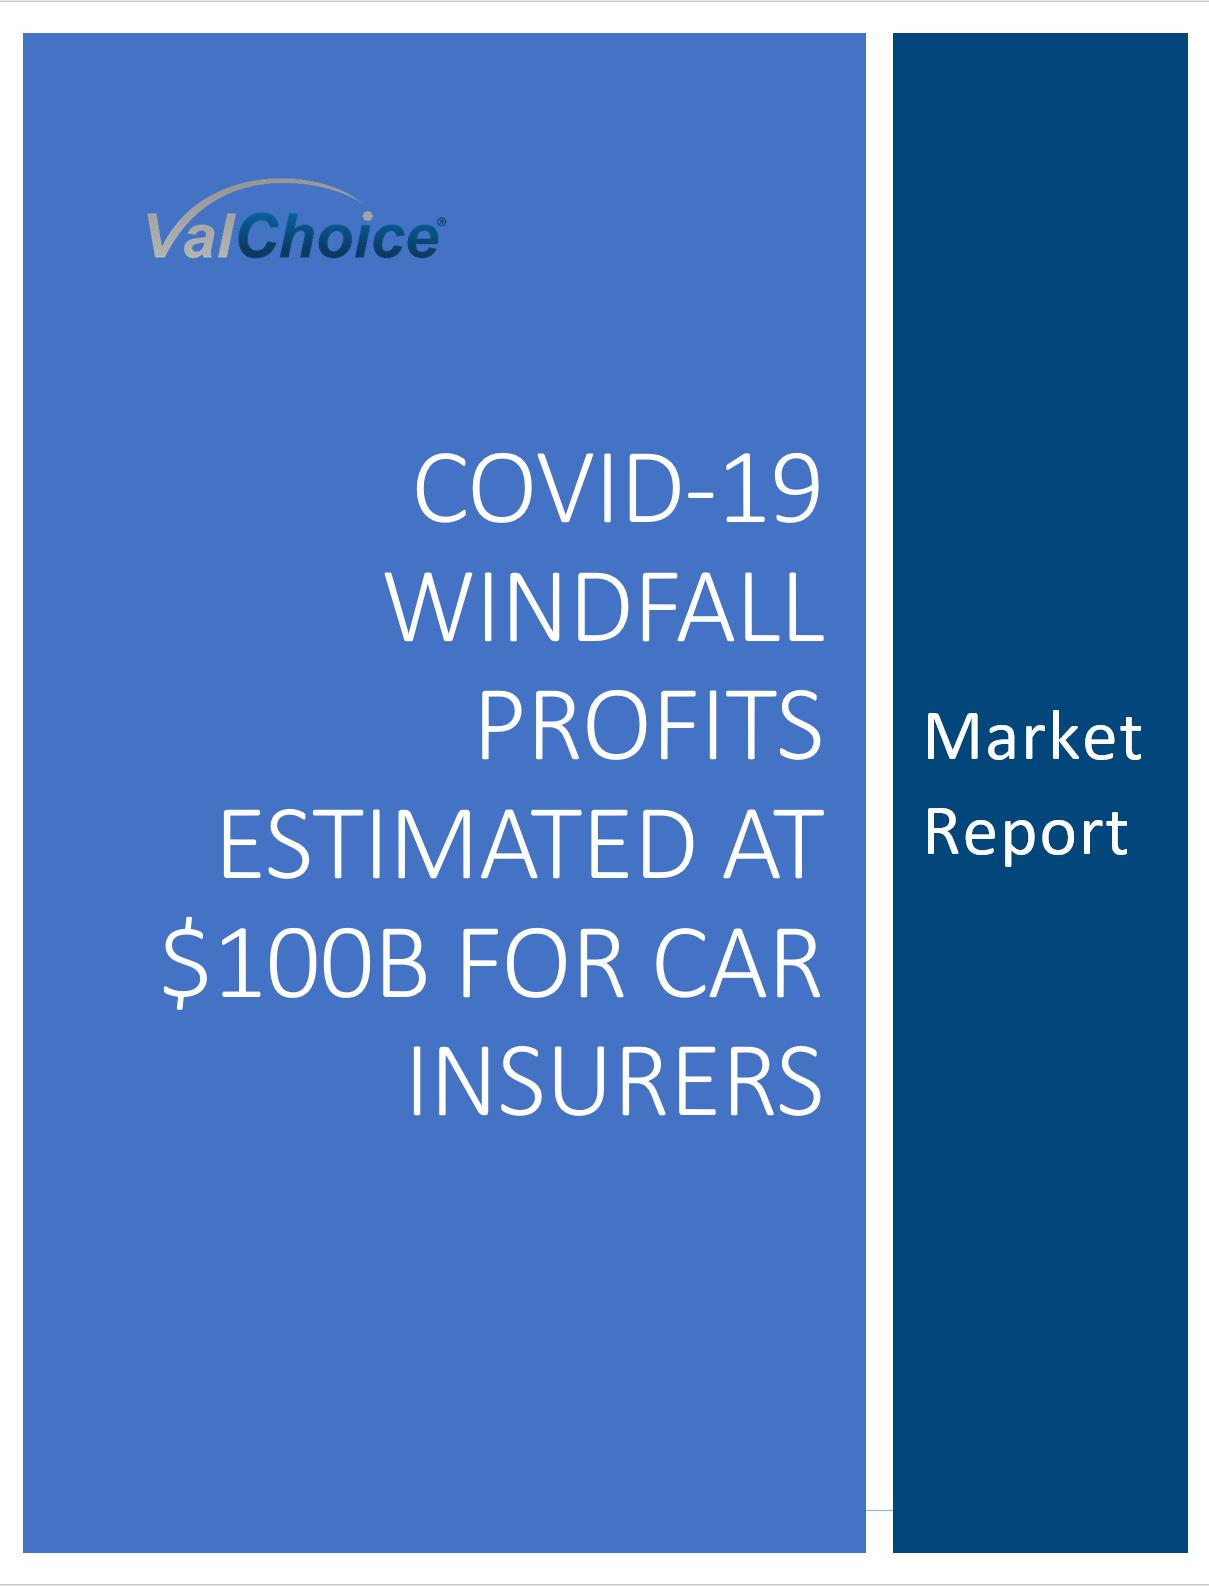 Image for report on COVID-19 Windfall Profits Estimated at $100B for Car Insurers